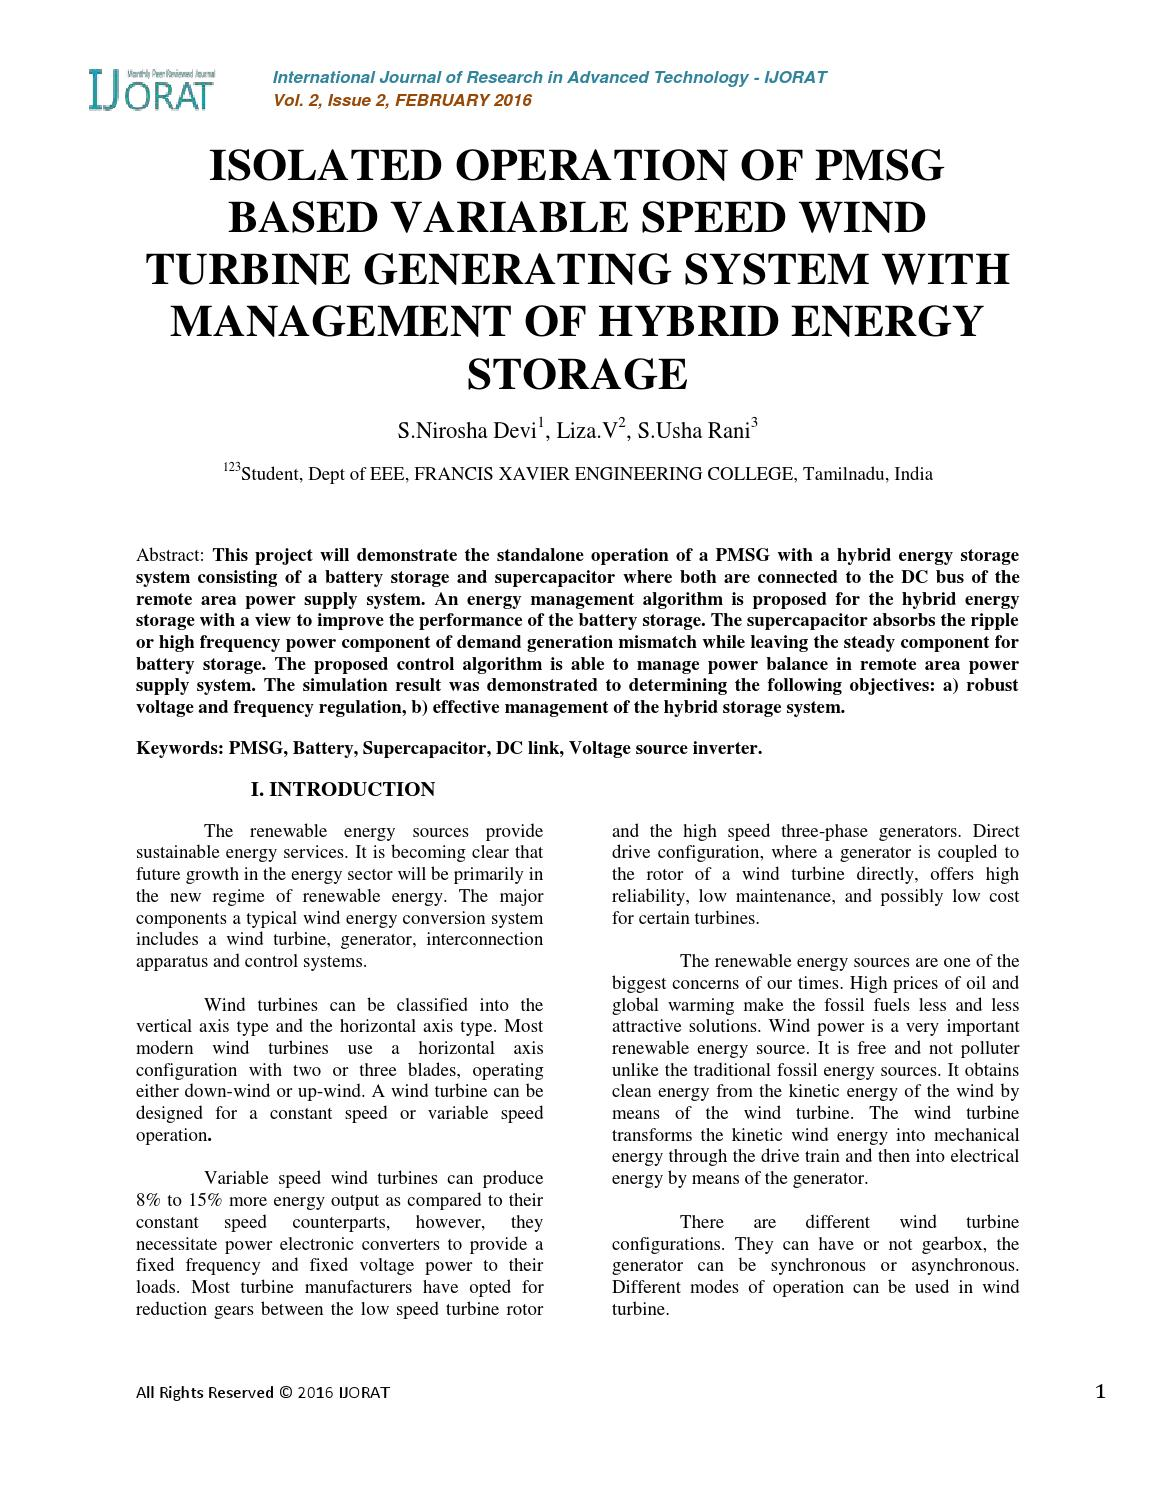 Isolated operation of pmsg based variable speed wind turbine